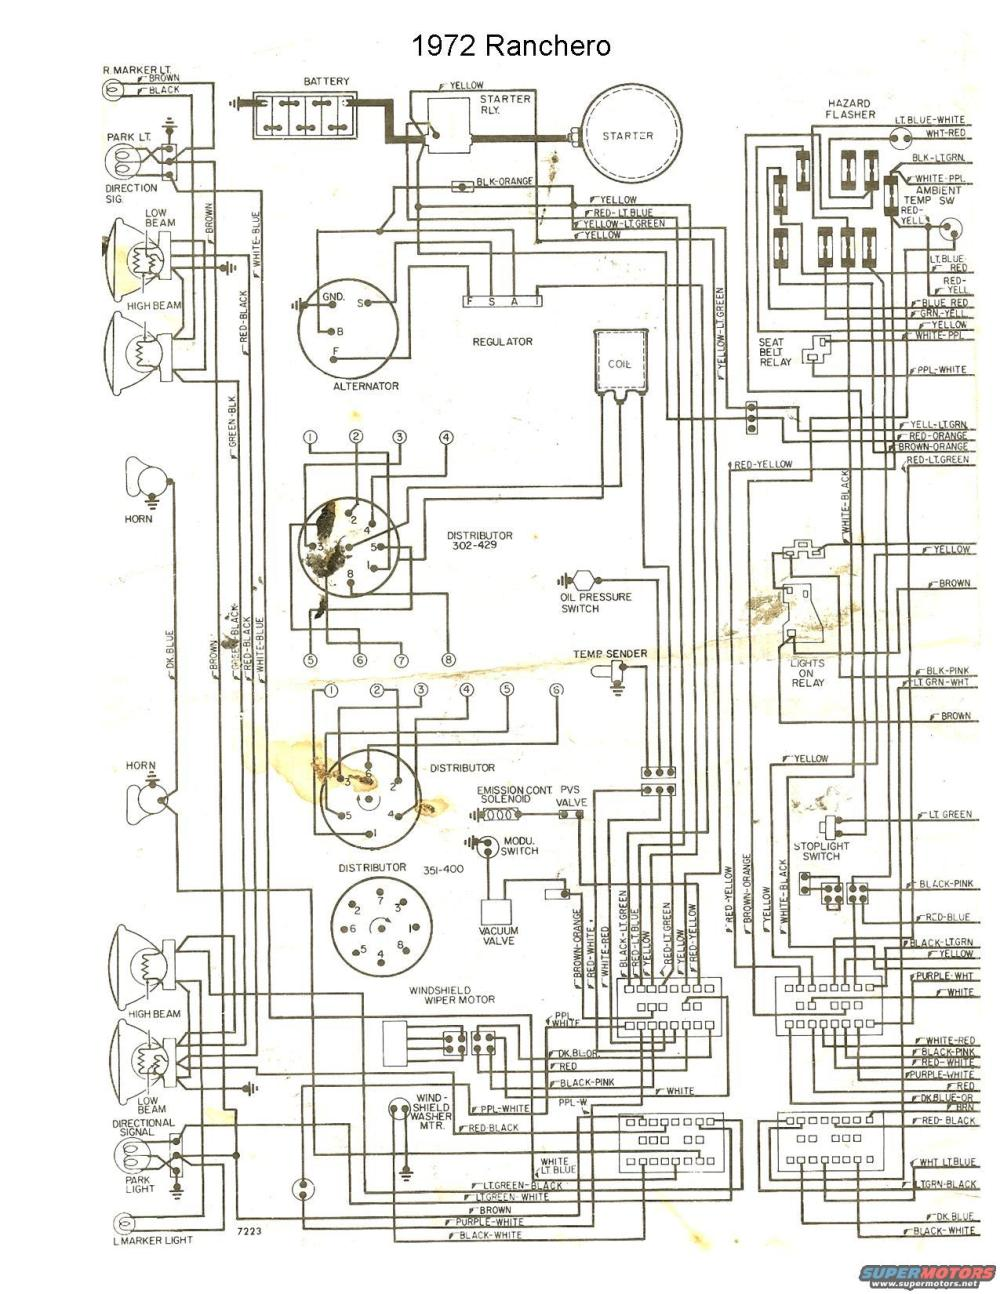 medium resolution of 1972 f250 wiring diagram data wiring diagram 1972 f250 wiring diagram